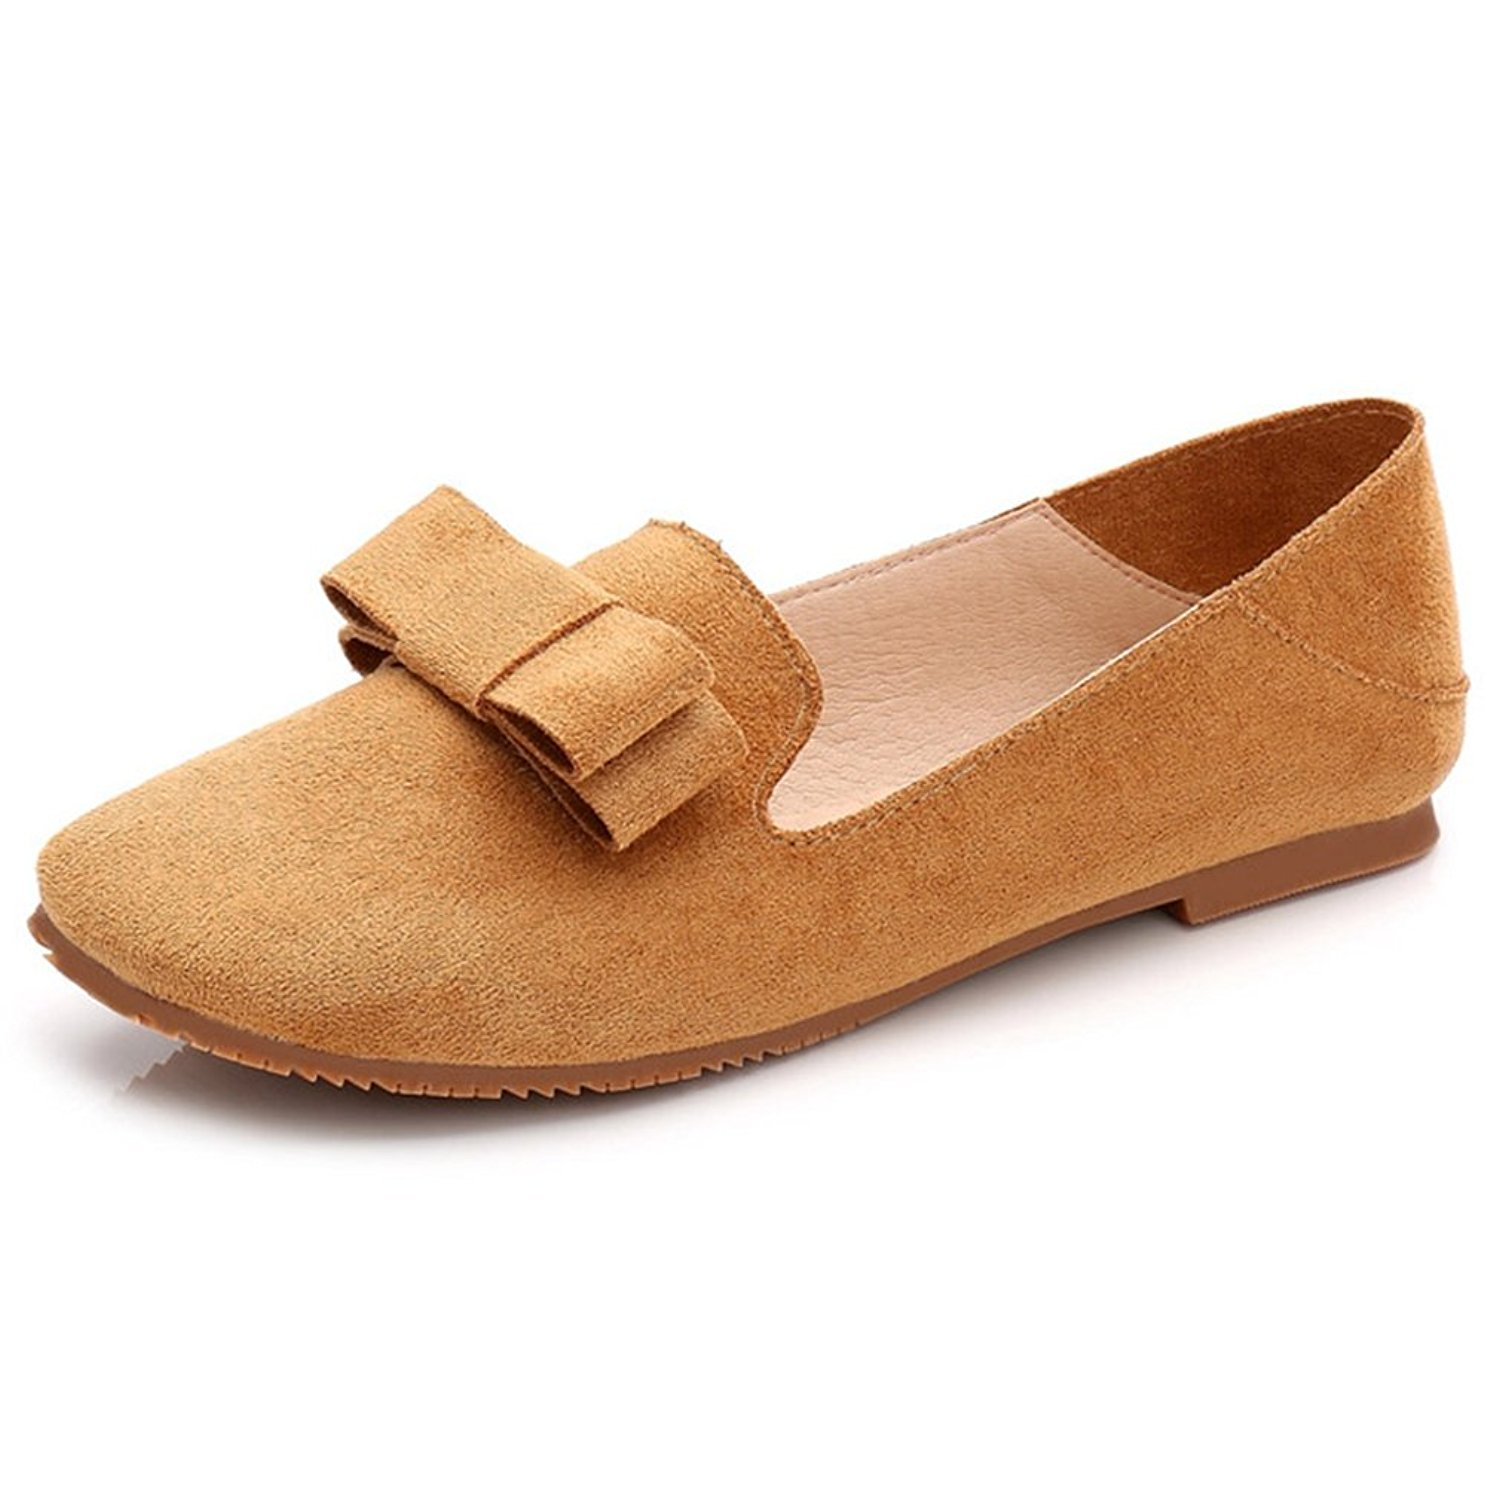 db341f11405 Get Quotations · Hoxekle Womens Bowknot Korean Version Low Heels Low Top Square  Toe Suede Slip On Loafer Shoes